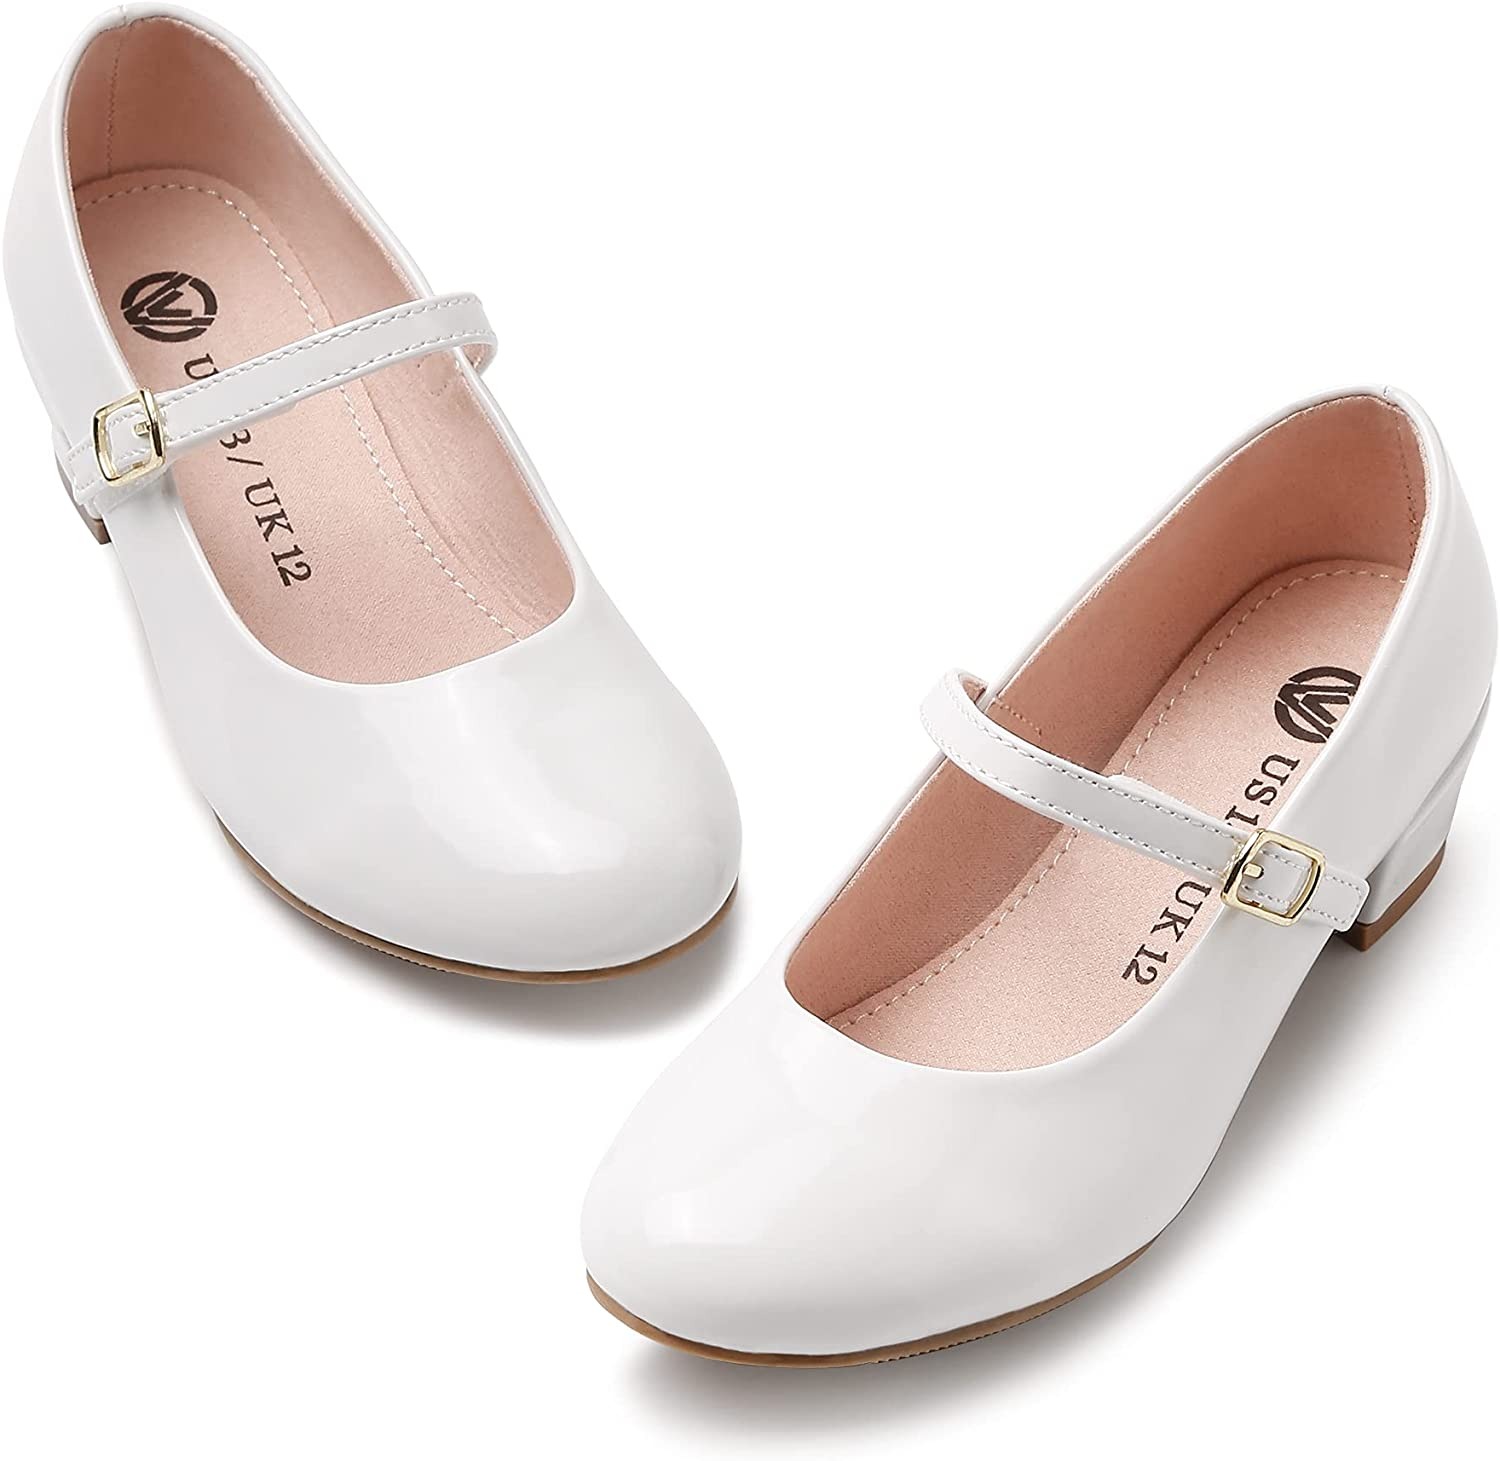 MIXIN Girls Mary Jane Dress Shoes - Princess Ballerina Flats for School Party Wedding, Back to School Shoes for Gilrs (Little Kid/Big Kids)